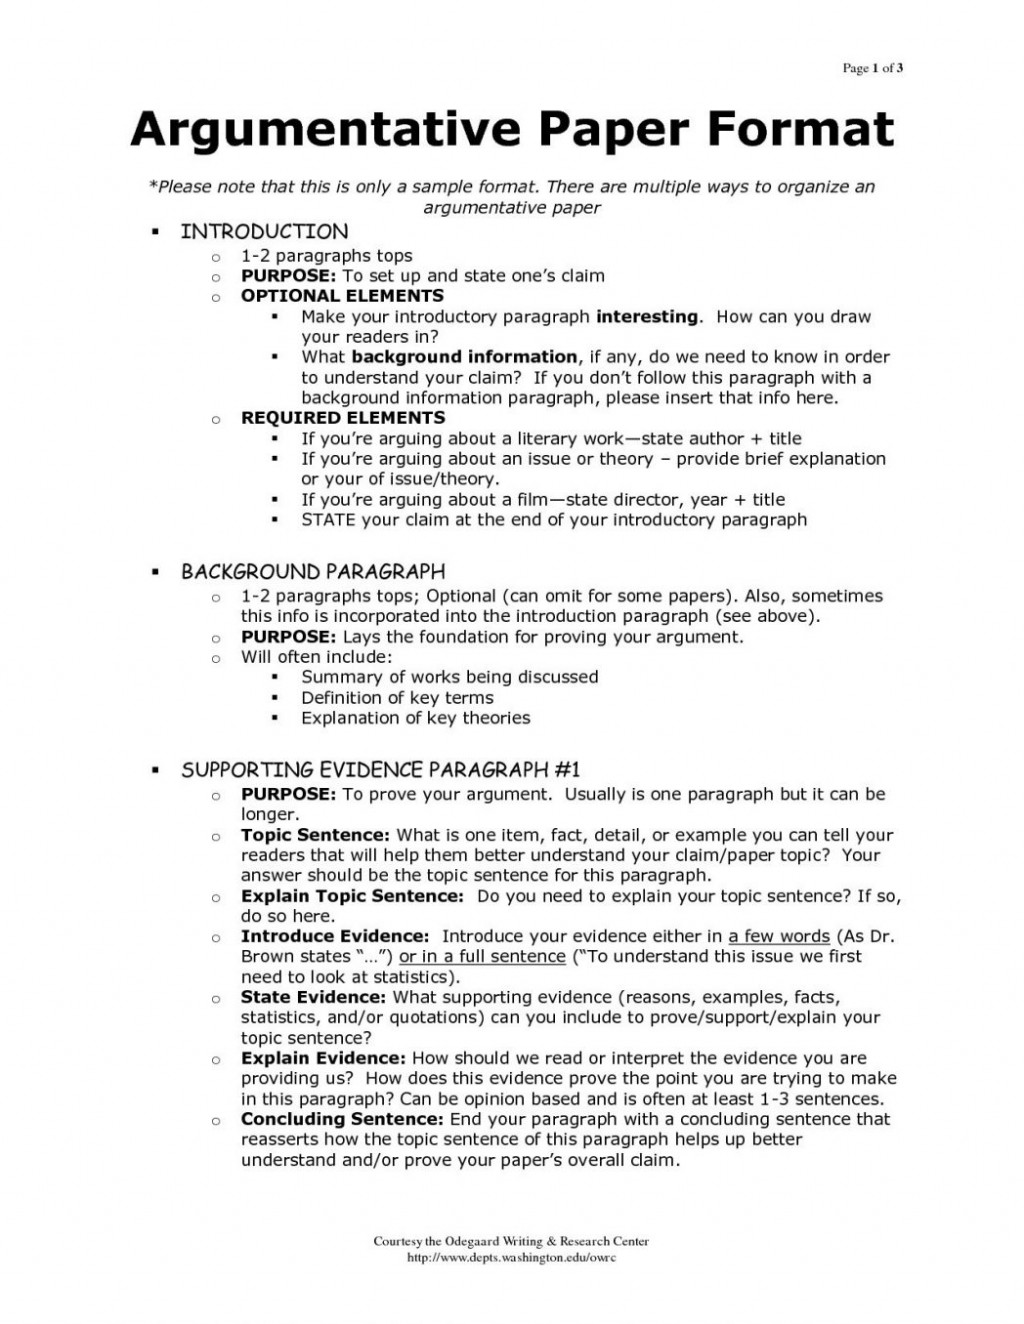 006 Essay Example Argumentativenclusion Outline Writings And Essays Argument Layout Debate Proposal Examples Pertainin Samples How To Write An 1048x1356 Of Beautiful Argumentative Conclusion Introduction Body Large